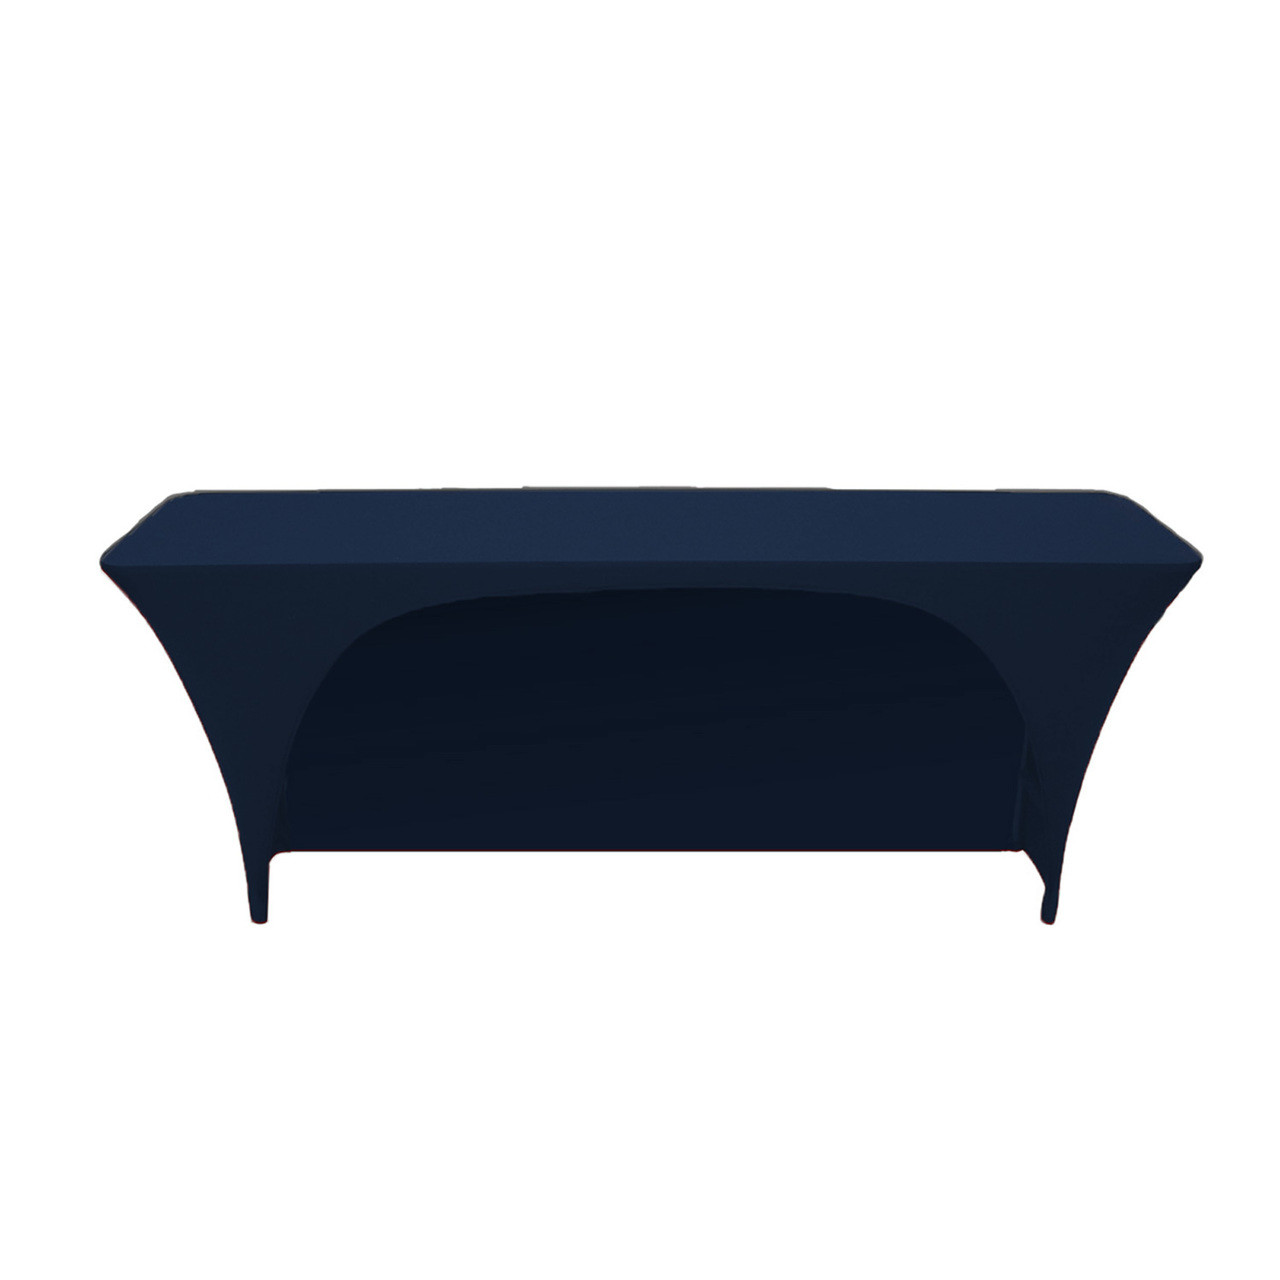 225 & Stretch Spandex 6 ft x 18 Inches Open Back Rectangular Table Cover Navy Blue